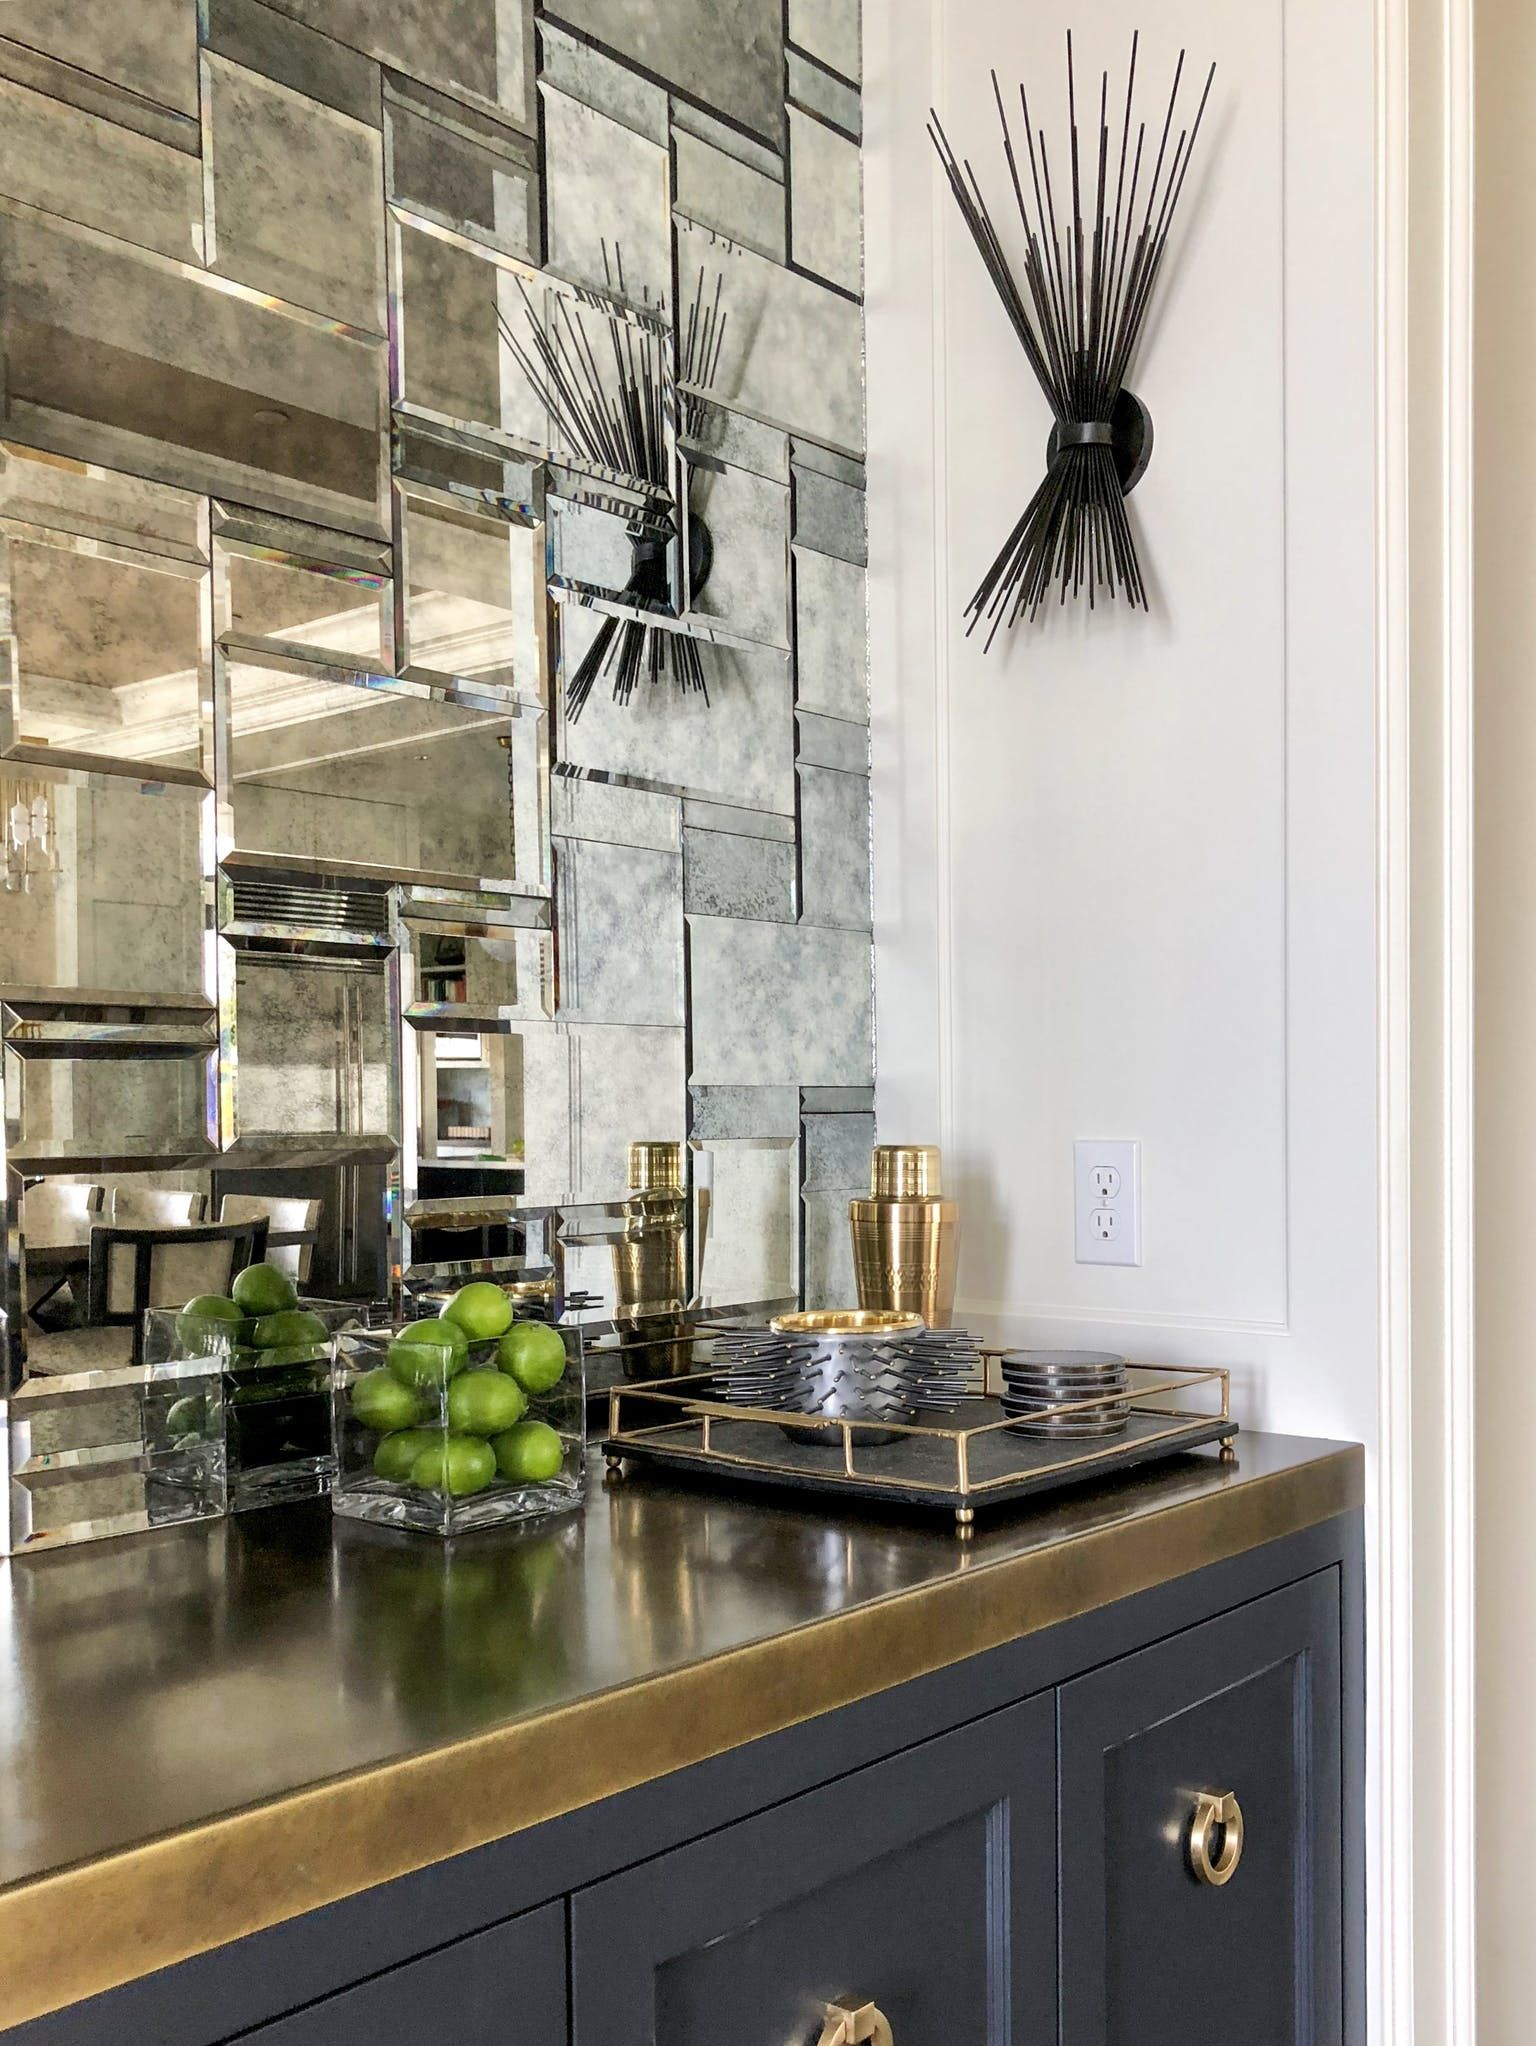 Mercer Island Dry Bar With Brass Countertop And Mosaic Mirror Tile Backsplash By Leeann Baker Interiors Lt In 2020 Home Bar Designs Mirror Tile Backsplash Bar Interior